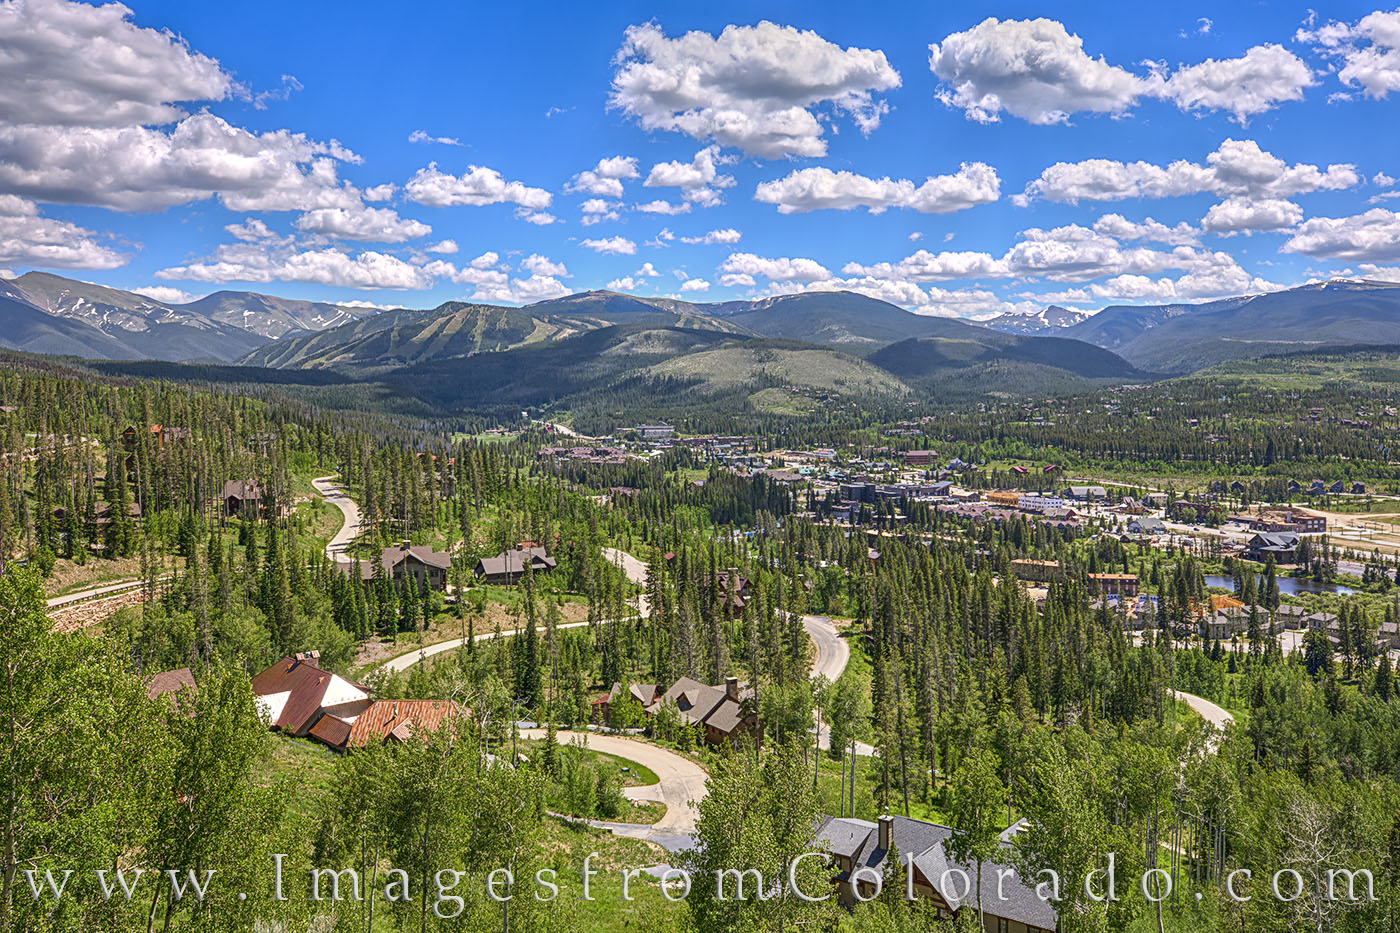 winter park, winter park ski, summer, landscape, hideaway park, highway 40, rocky mountains, resort, winter park resort, photo